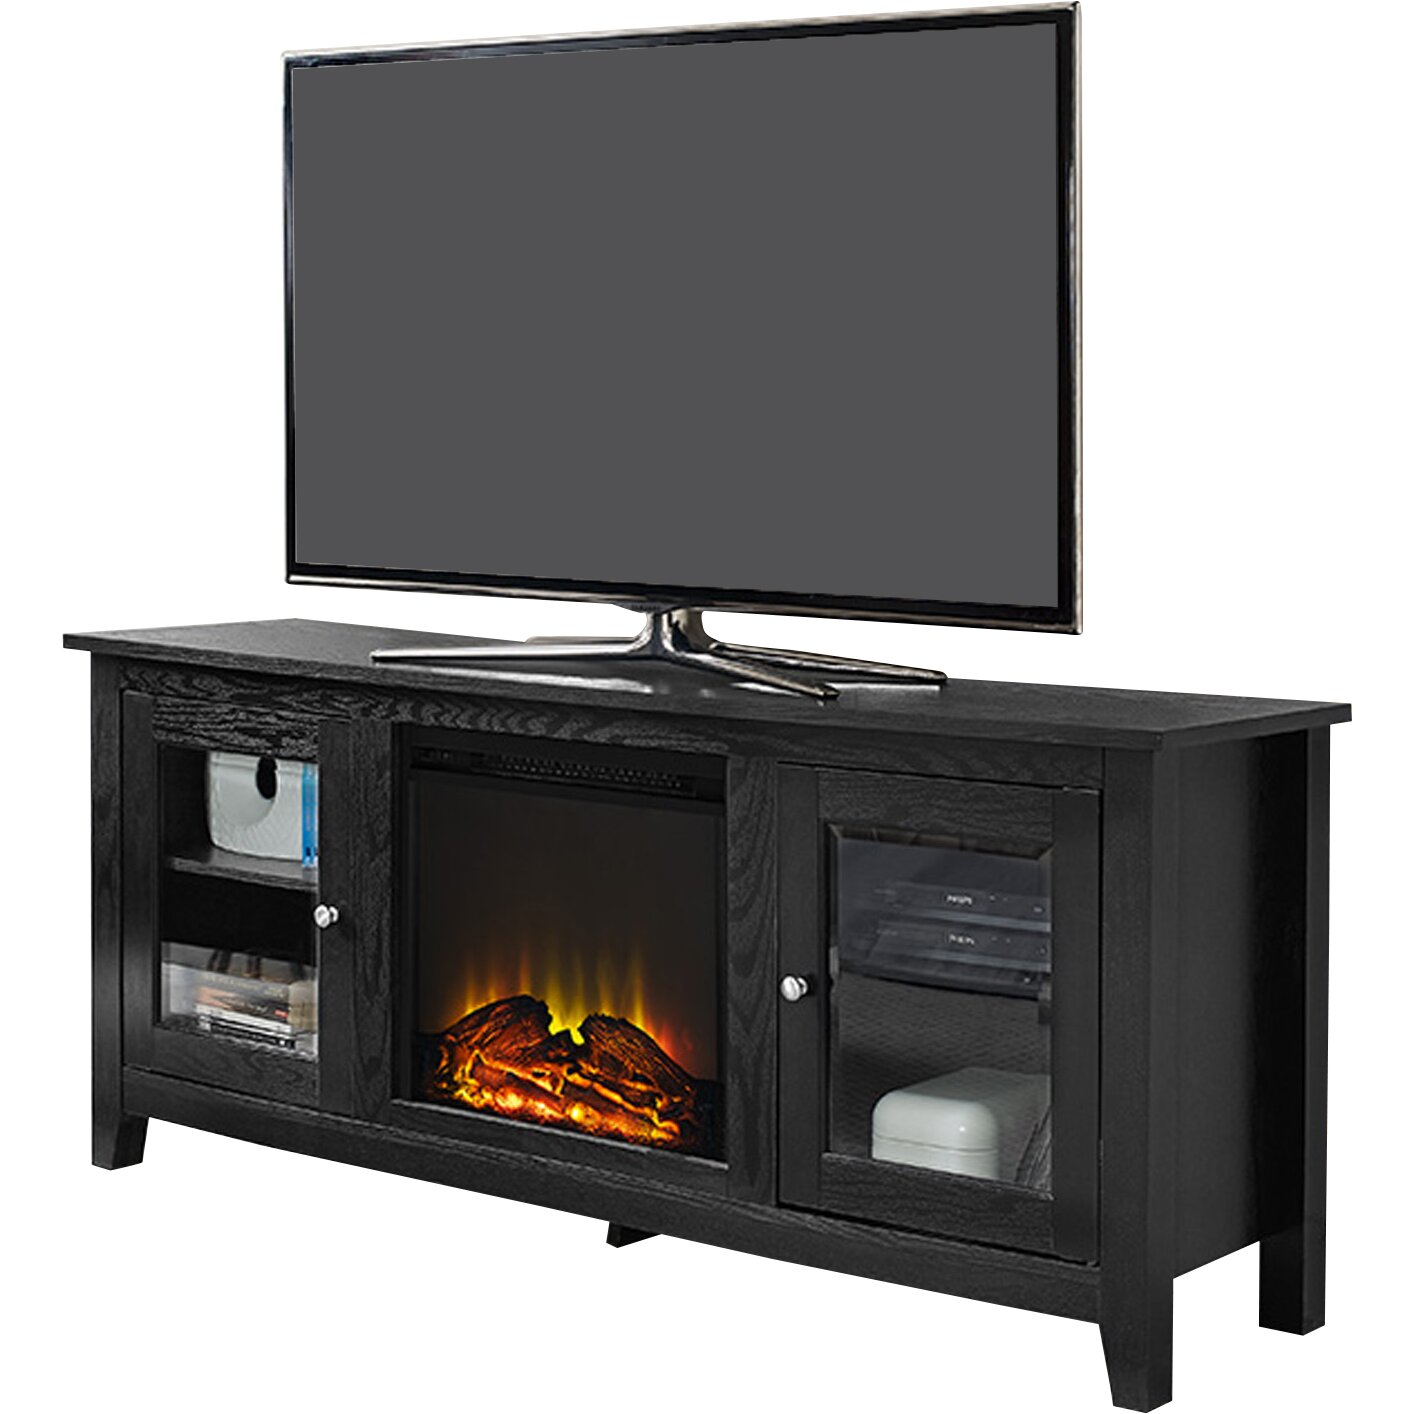 Red Barrel Studio® Riverwoods TV Stand with Electric Fireplace - Red Barrel Studio Riverwoods TV Stand With Electric Fireplace